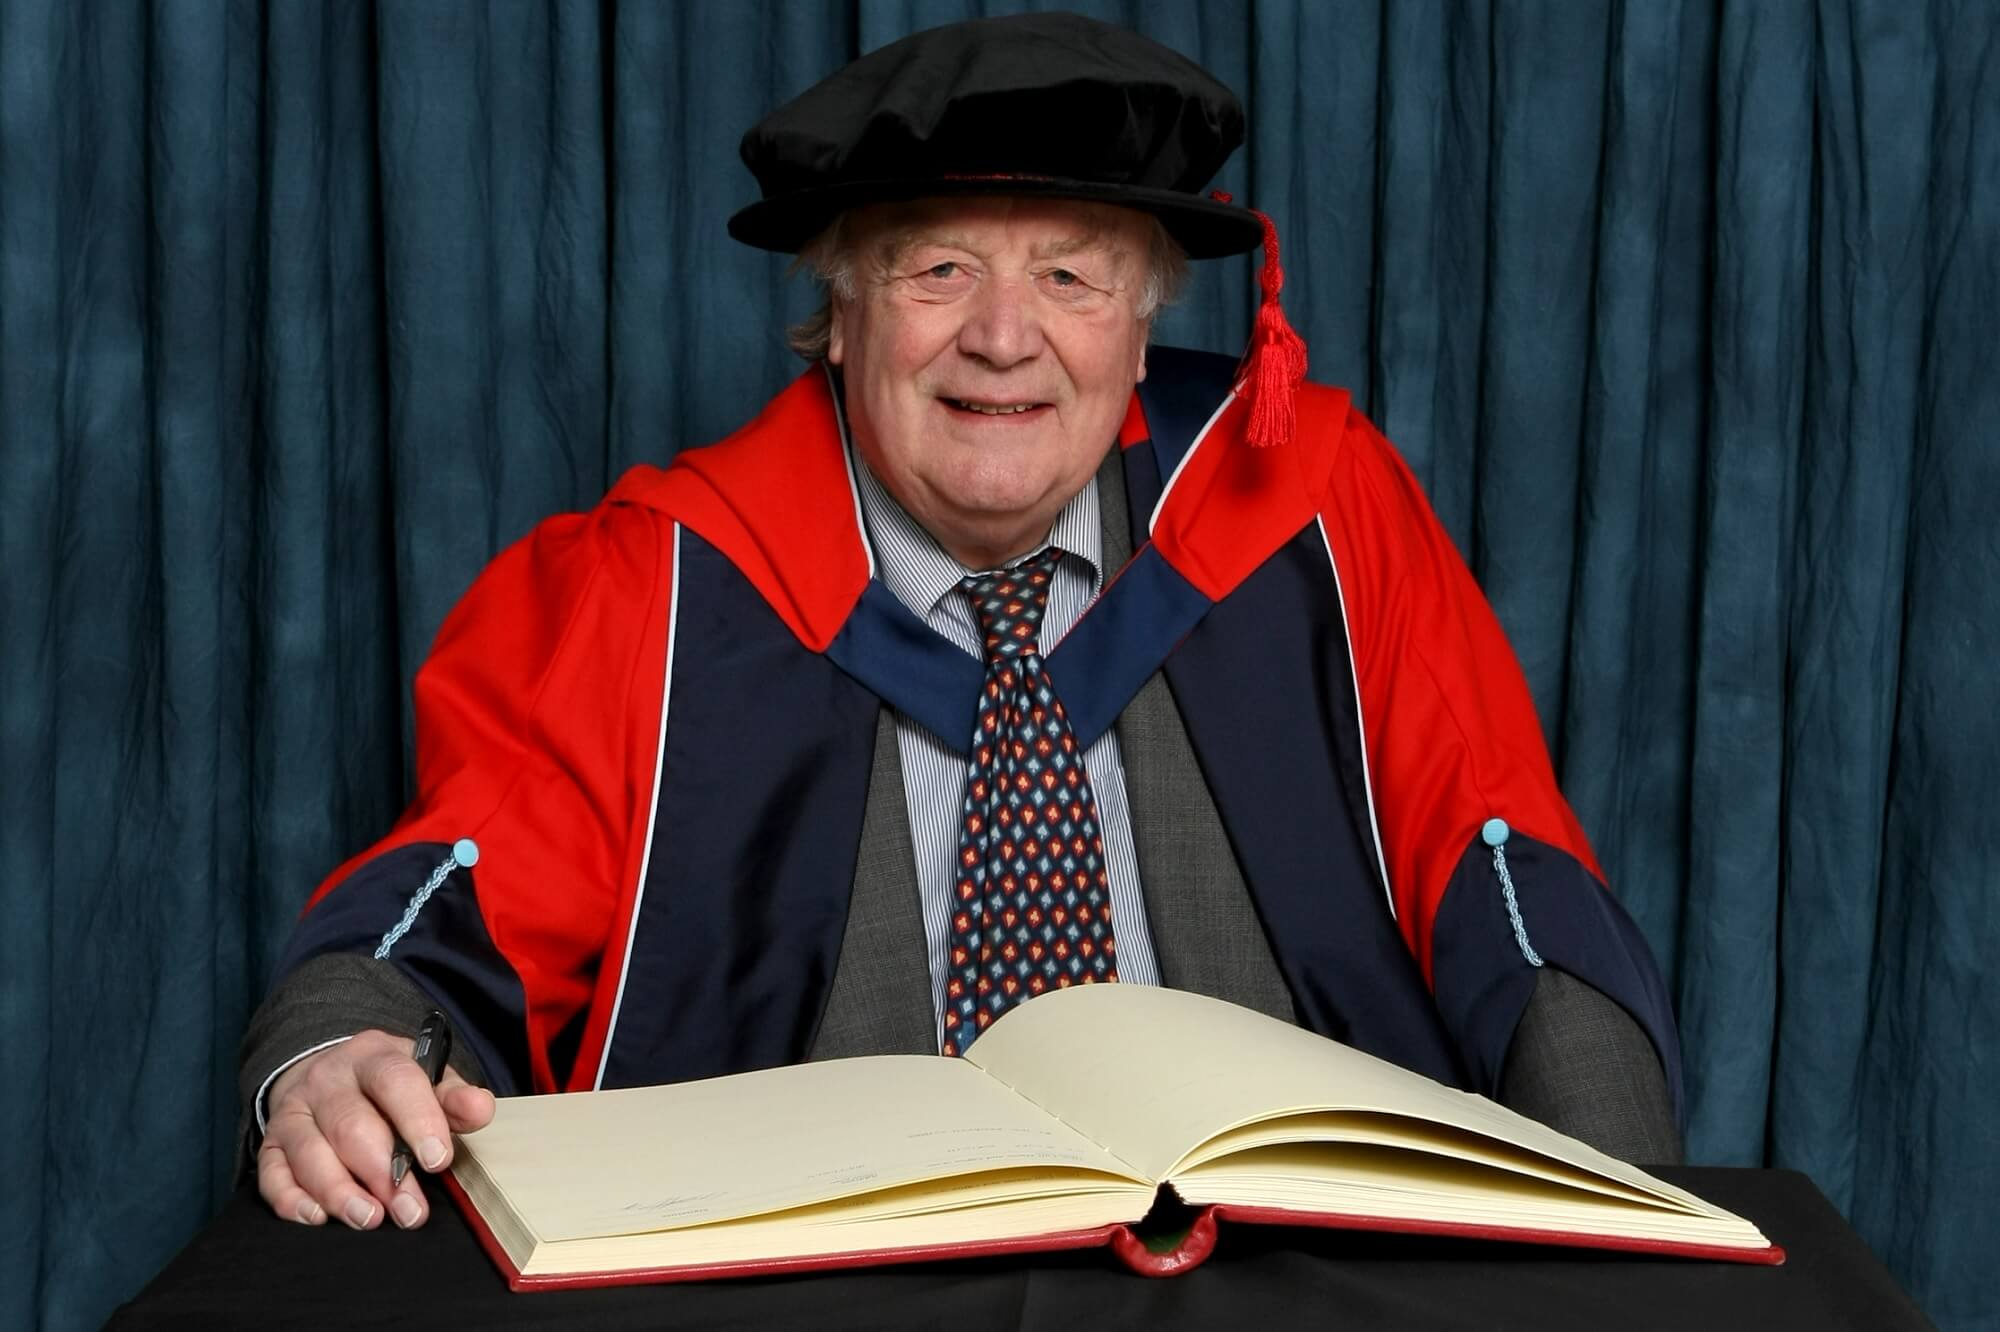 Kenneth Clarke MP receiving his honorary degree (HonDUniv)